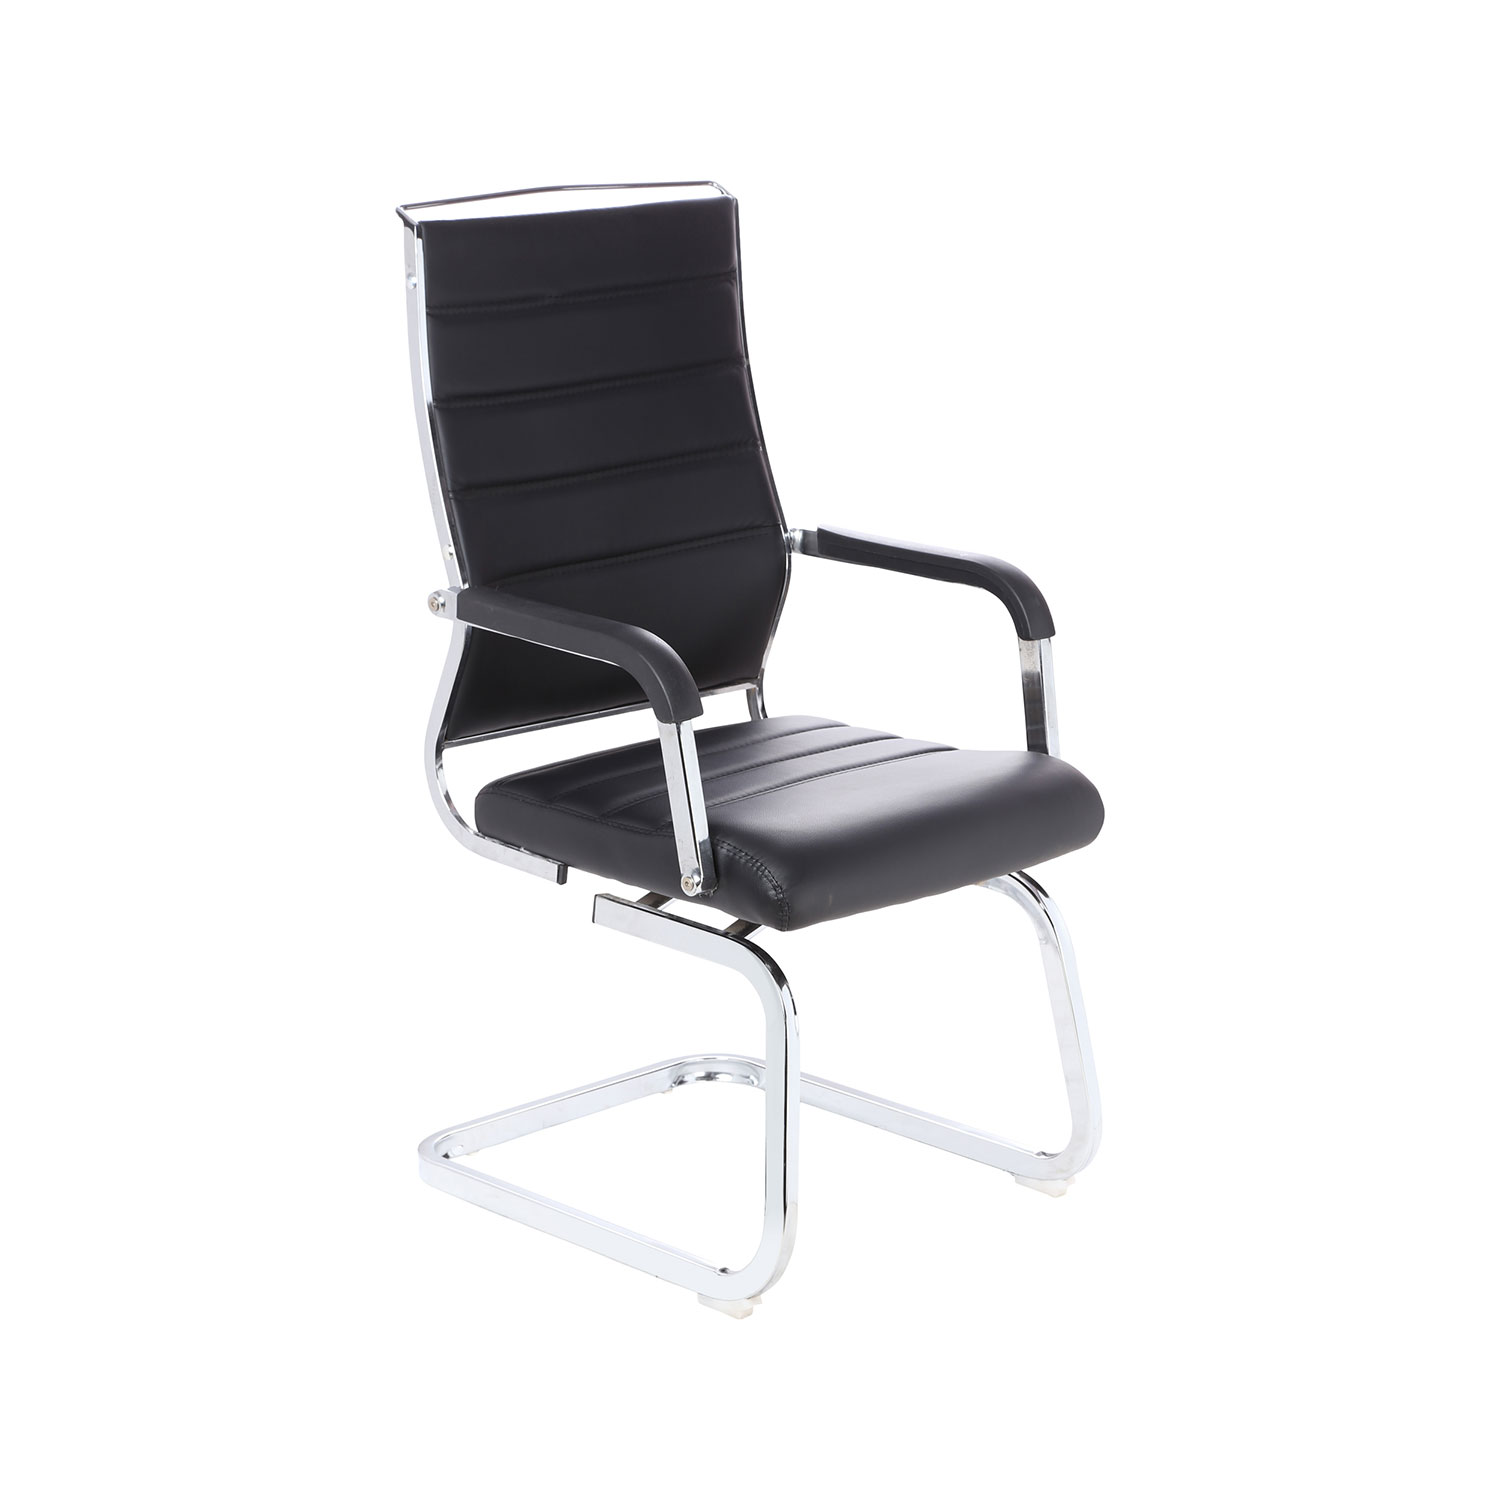 revolving chair and covers pembrokeshire arrotrate medium back fix in black